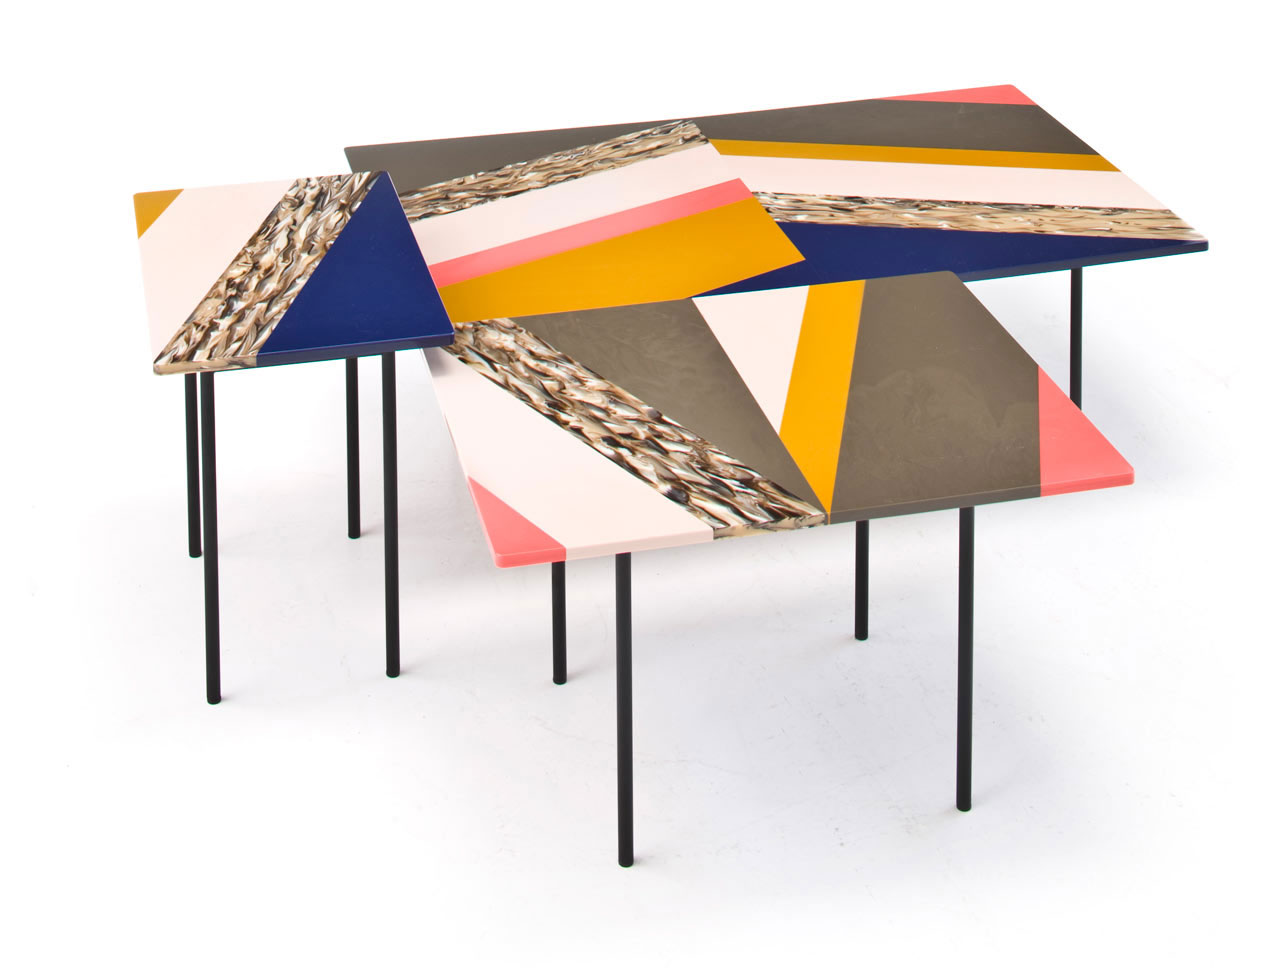 'Fishbone' tables by Patricia Urquiola for Moroso | Yellowtrace.